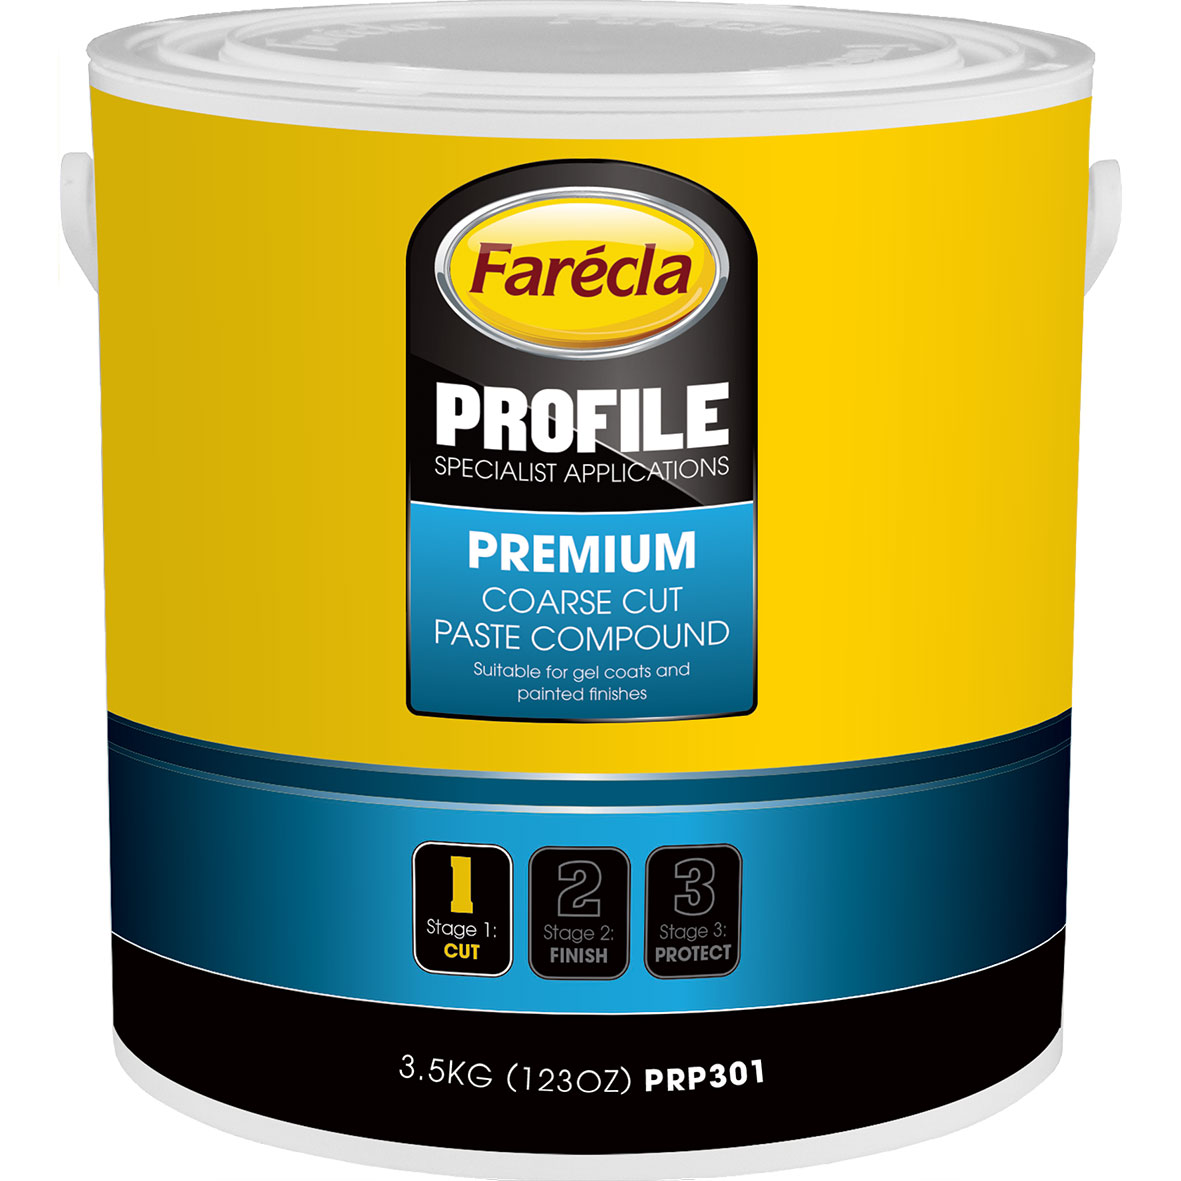 Profile Premium Paste Compound